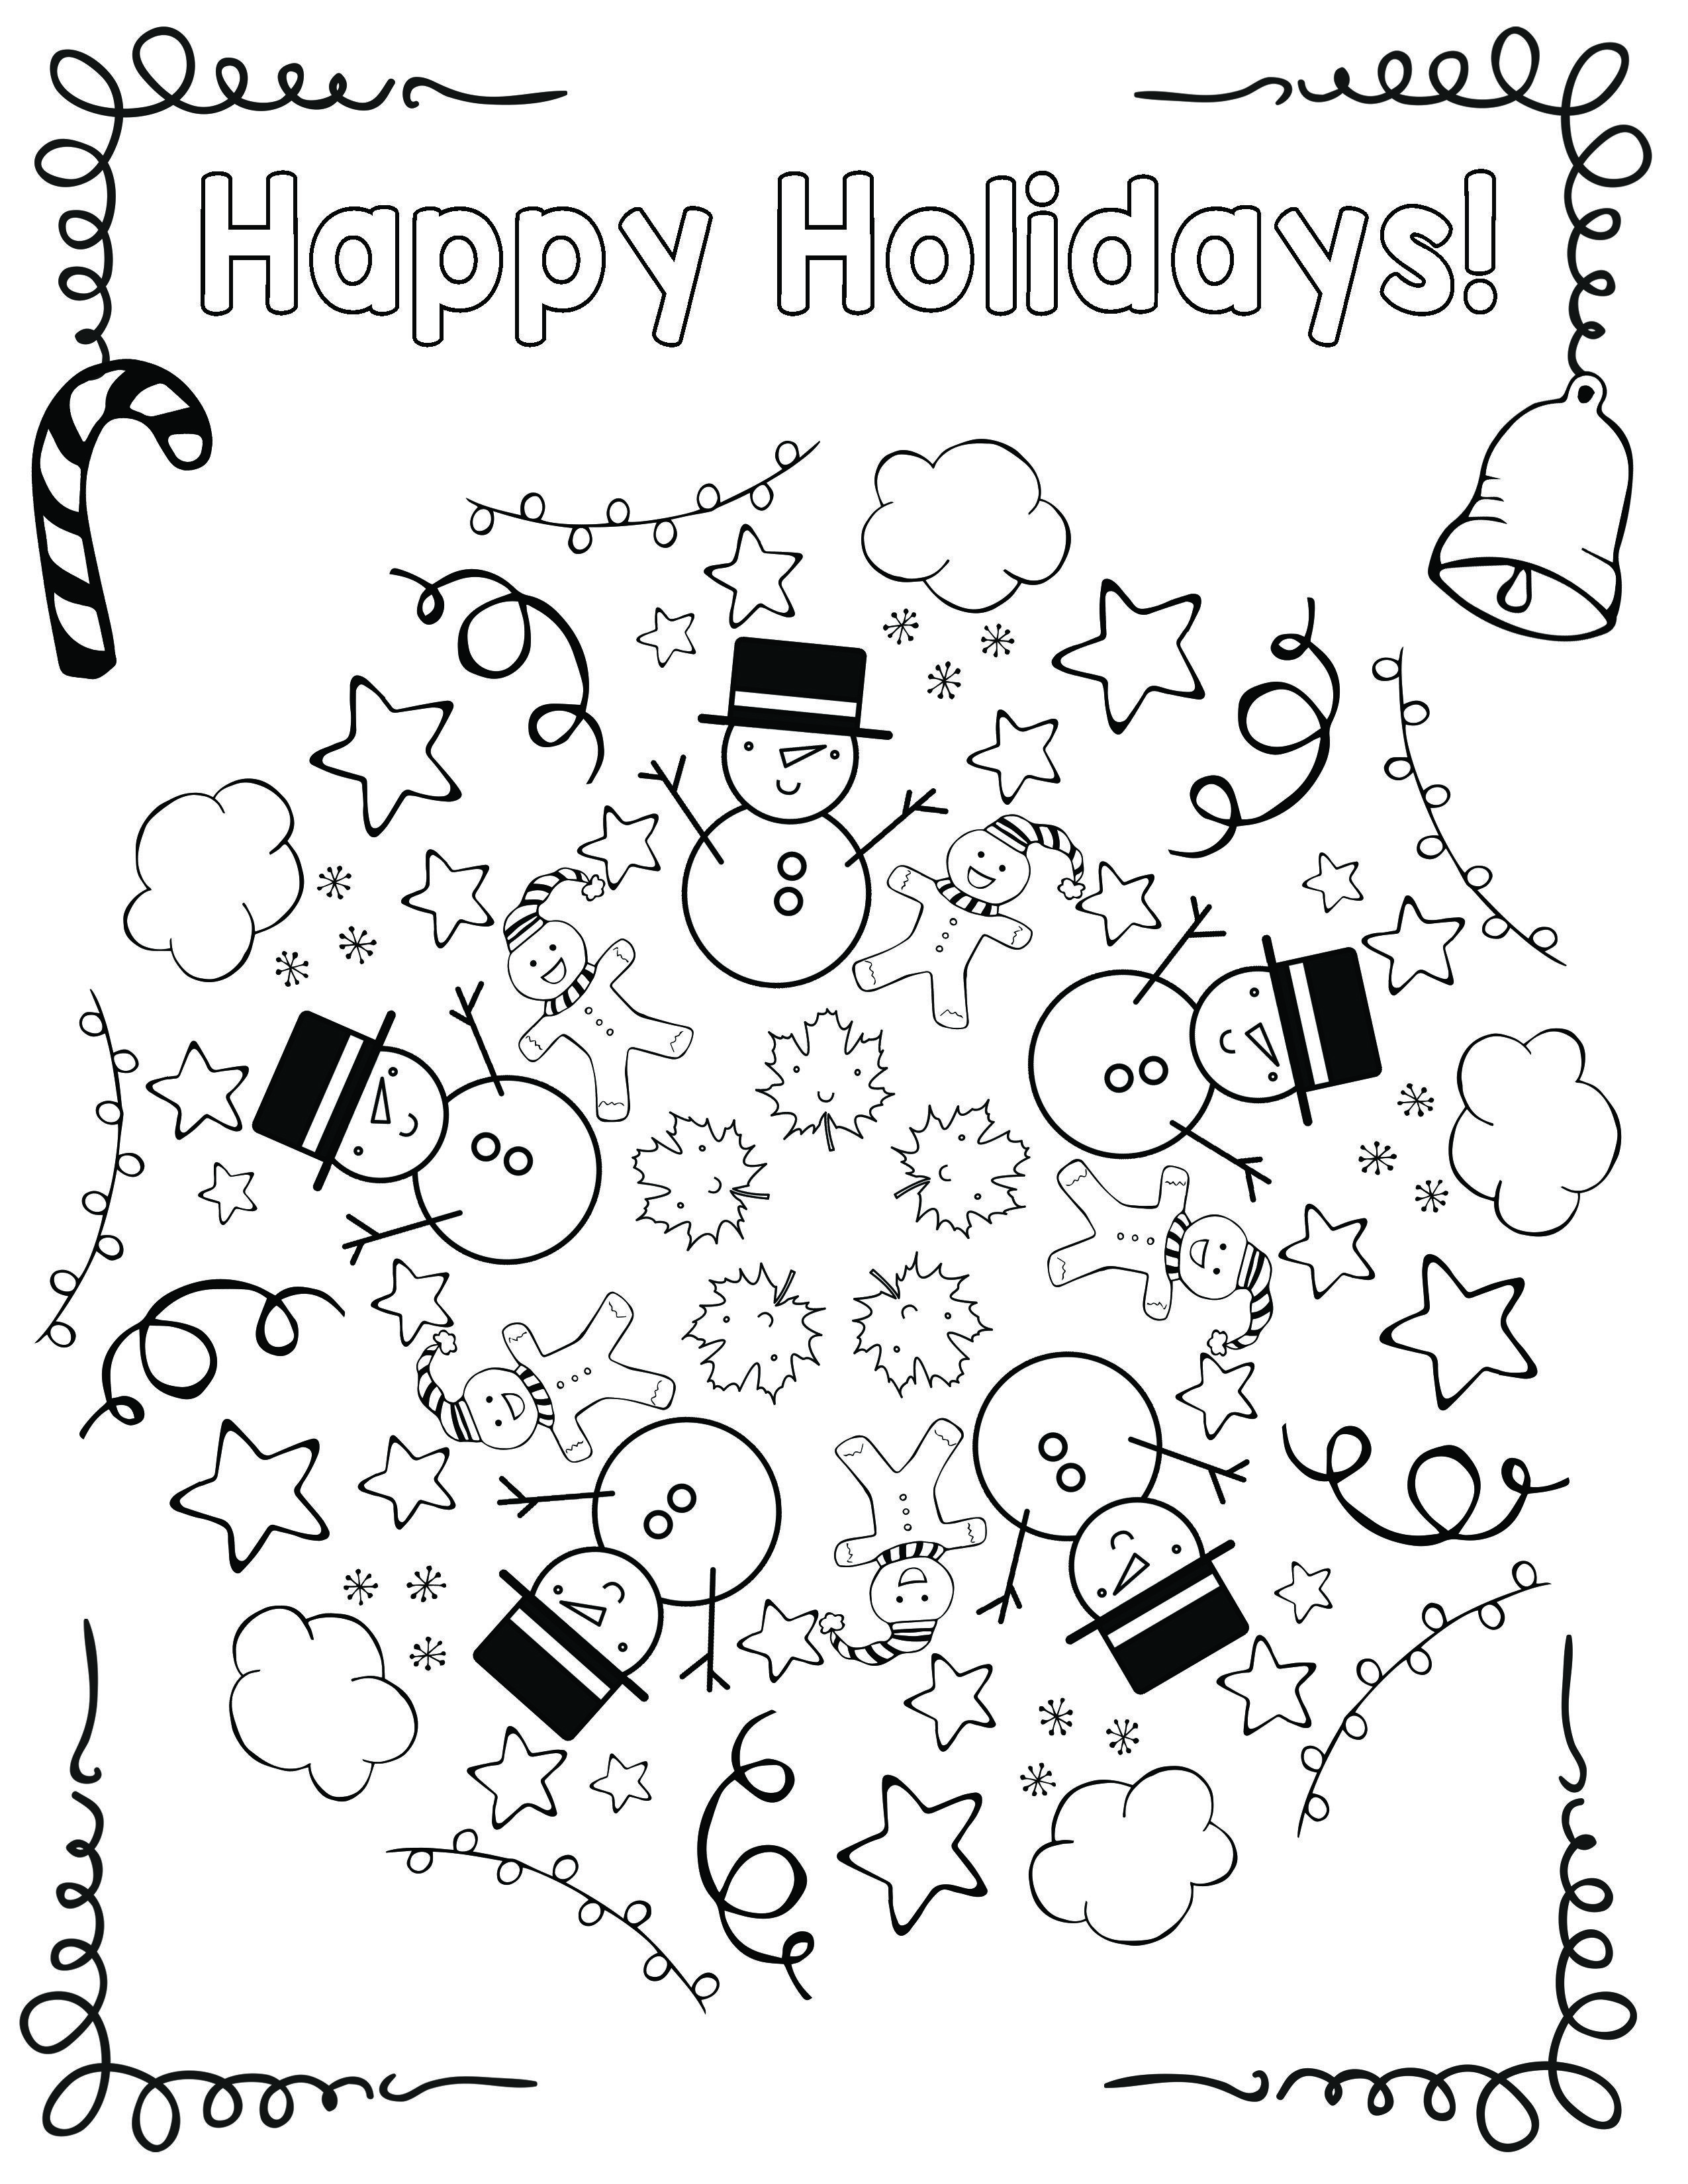 Christmas Educational Coloring Pages With Free Holiday Mandala Cool School Ideas